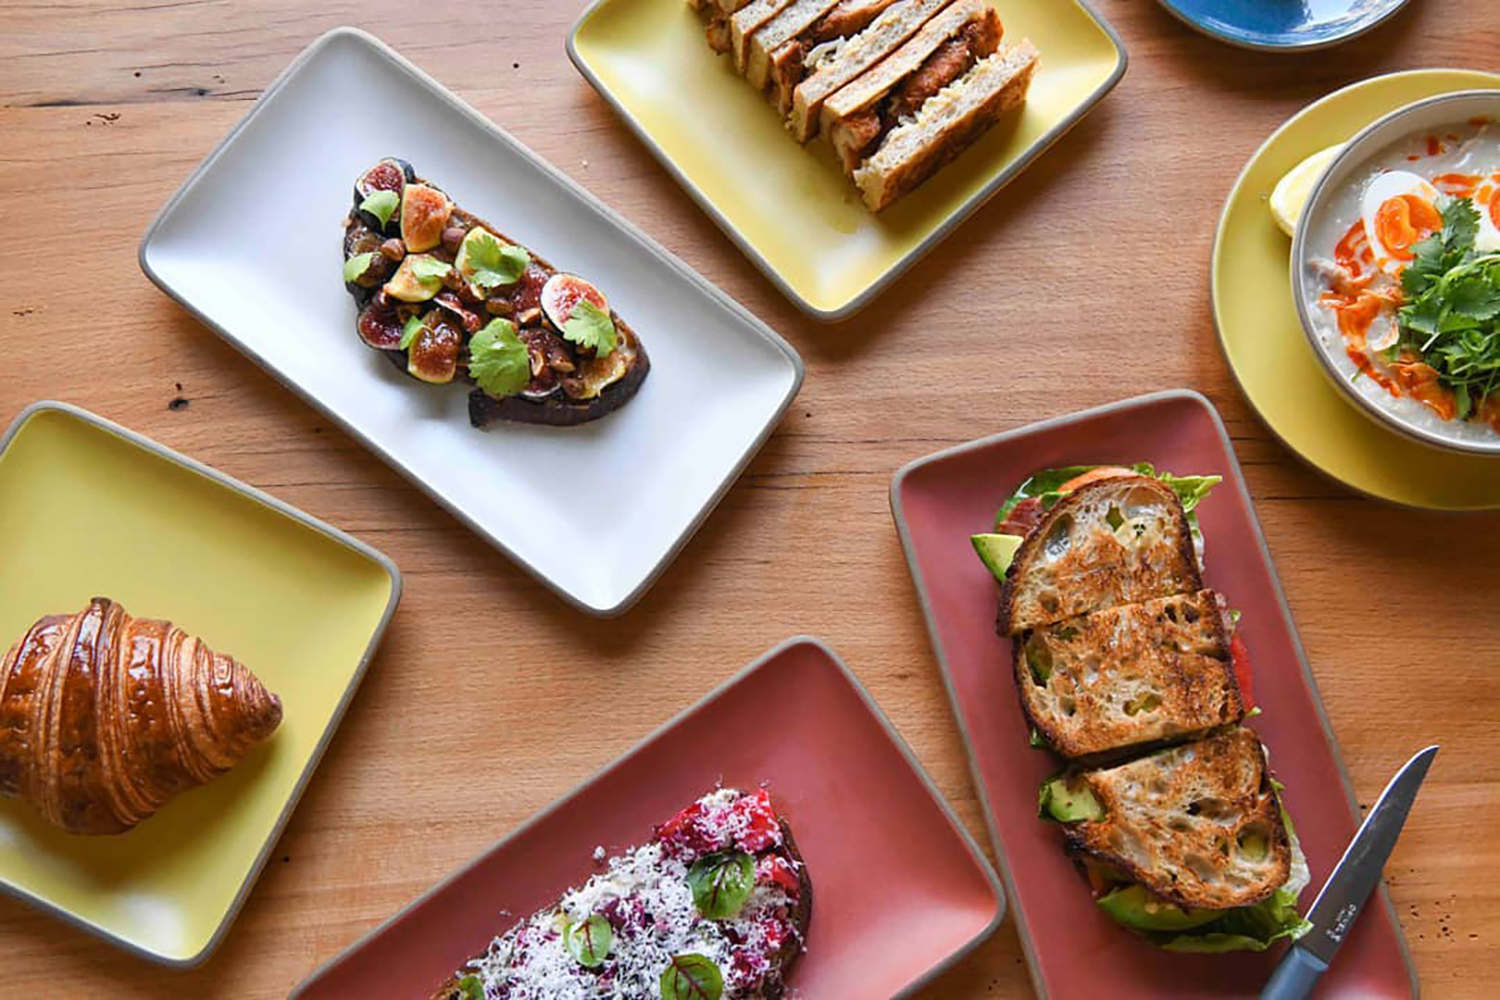 The 5 Best Restaurants That Opened In The Bay Area This